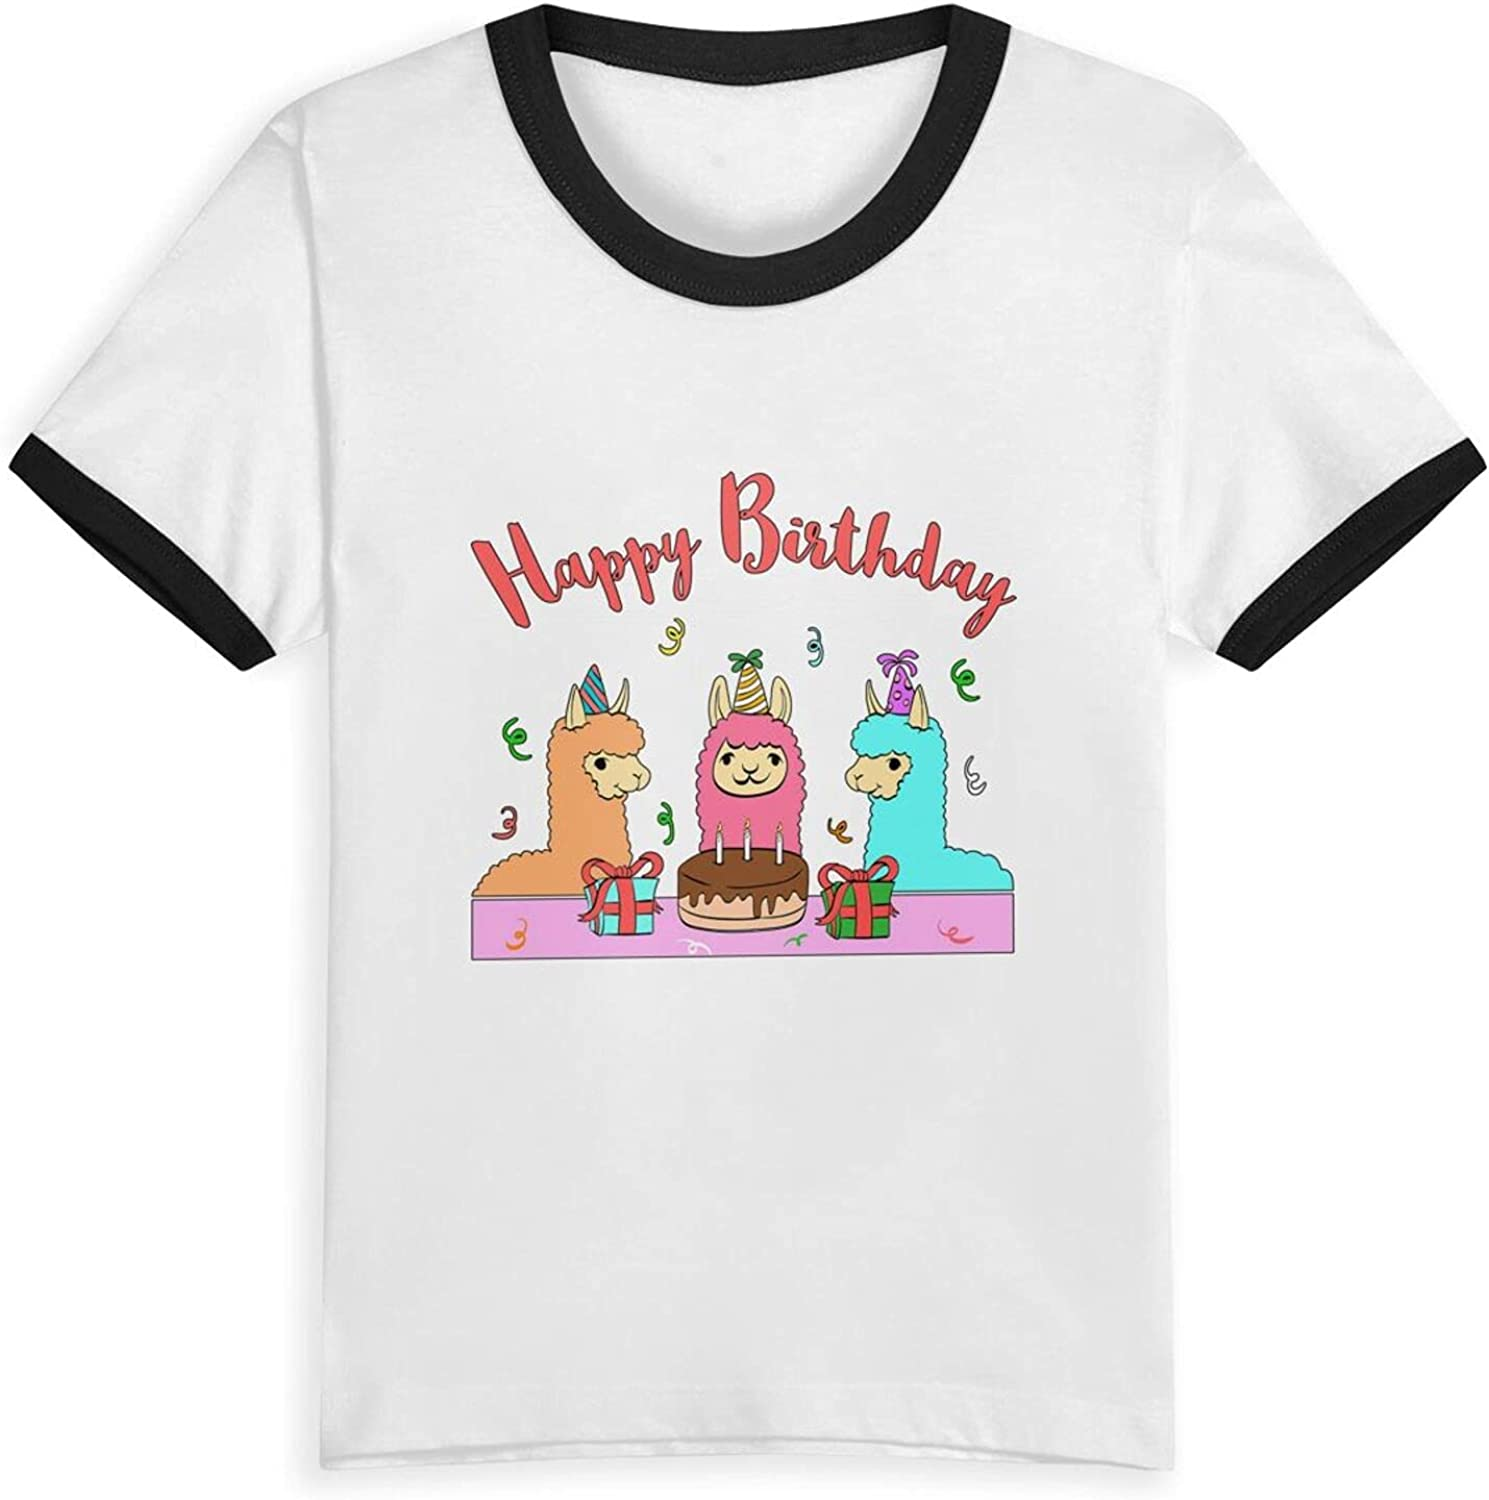 Llama Celebrating Birthday T-Shirts Novelty for Kids Tees with Cool Designs